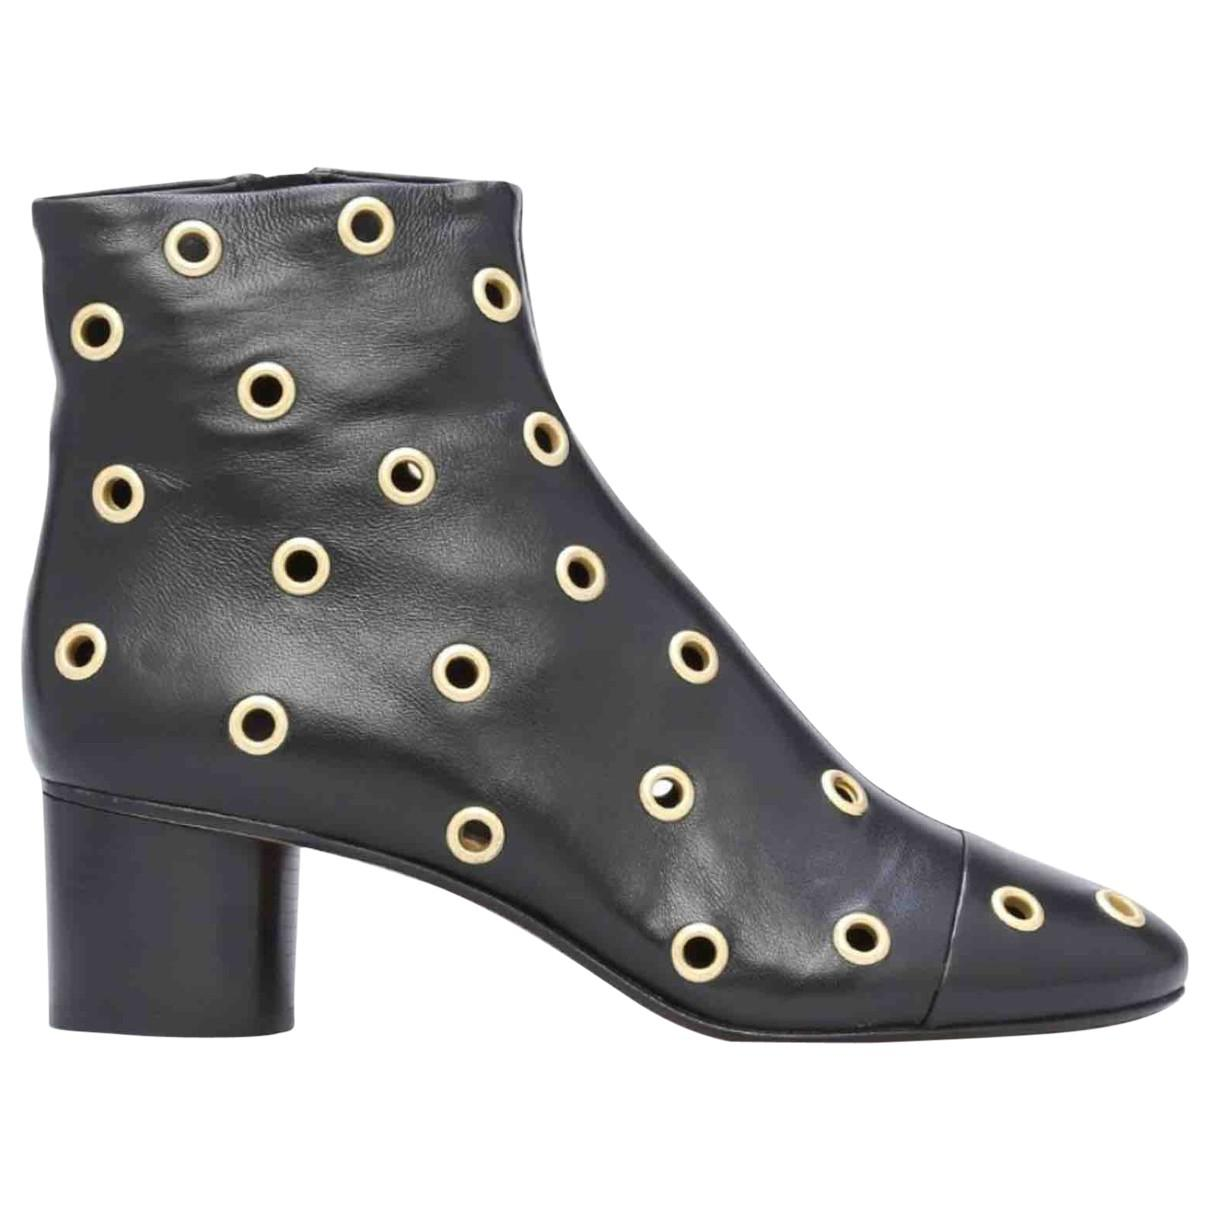 Isabel Marant Pre-owned Leather Ankle Boots in Black